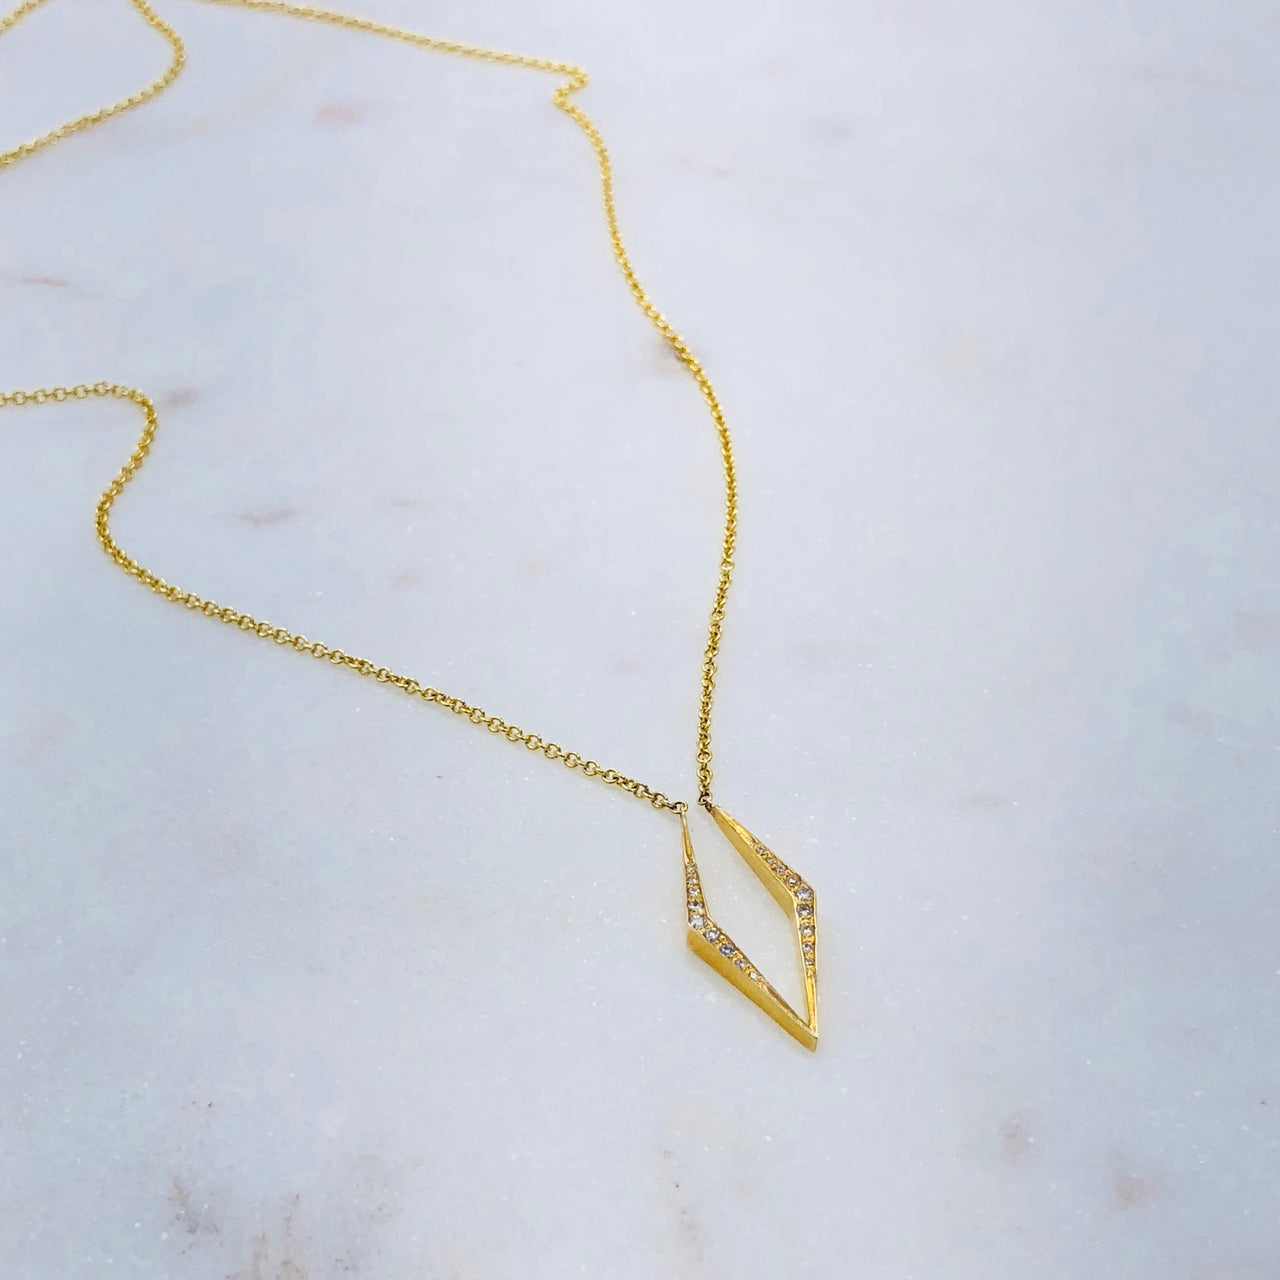 14K Yellow Gold Kite Diamond Necklace.